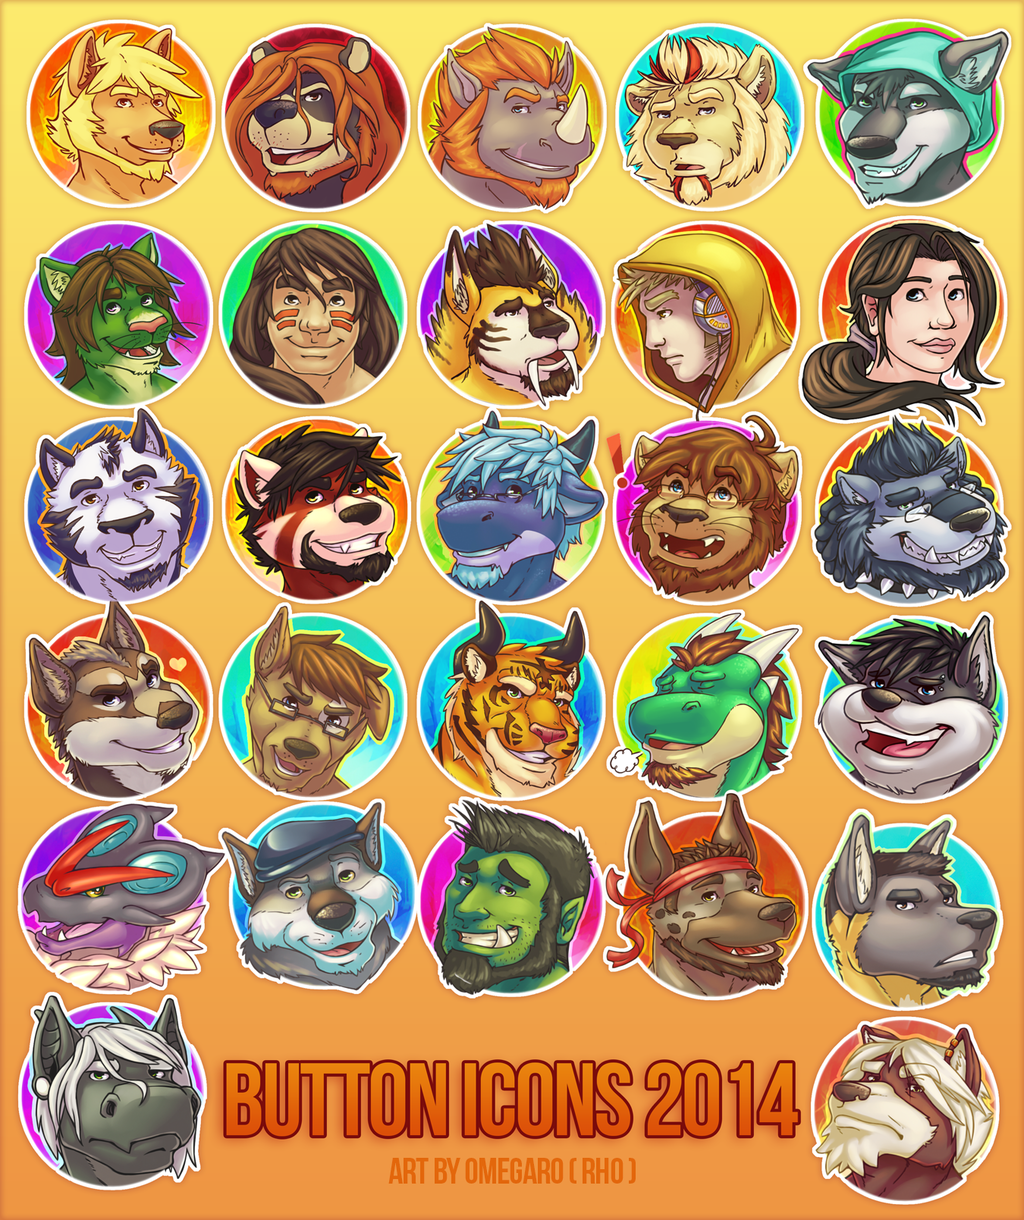 BUTTON ICONS 2014